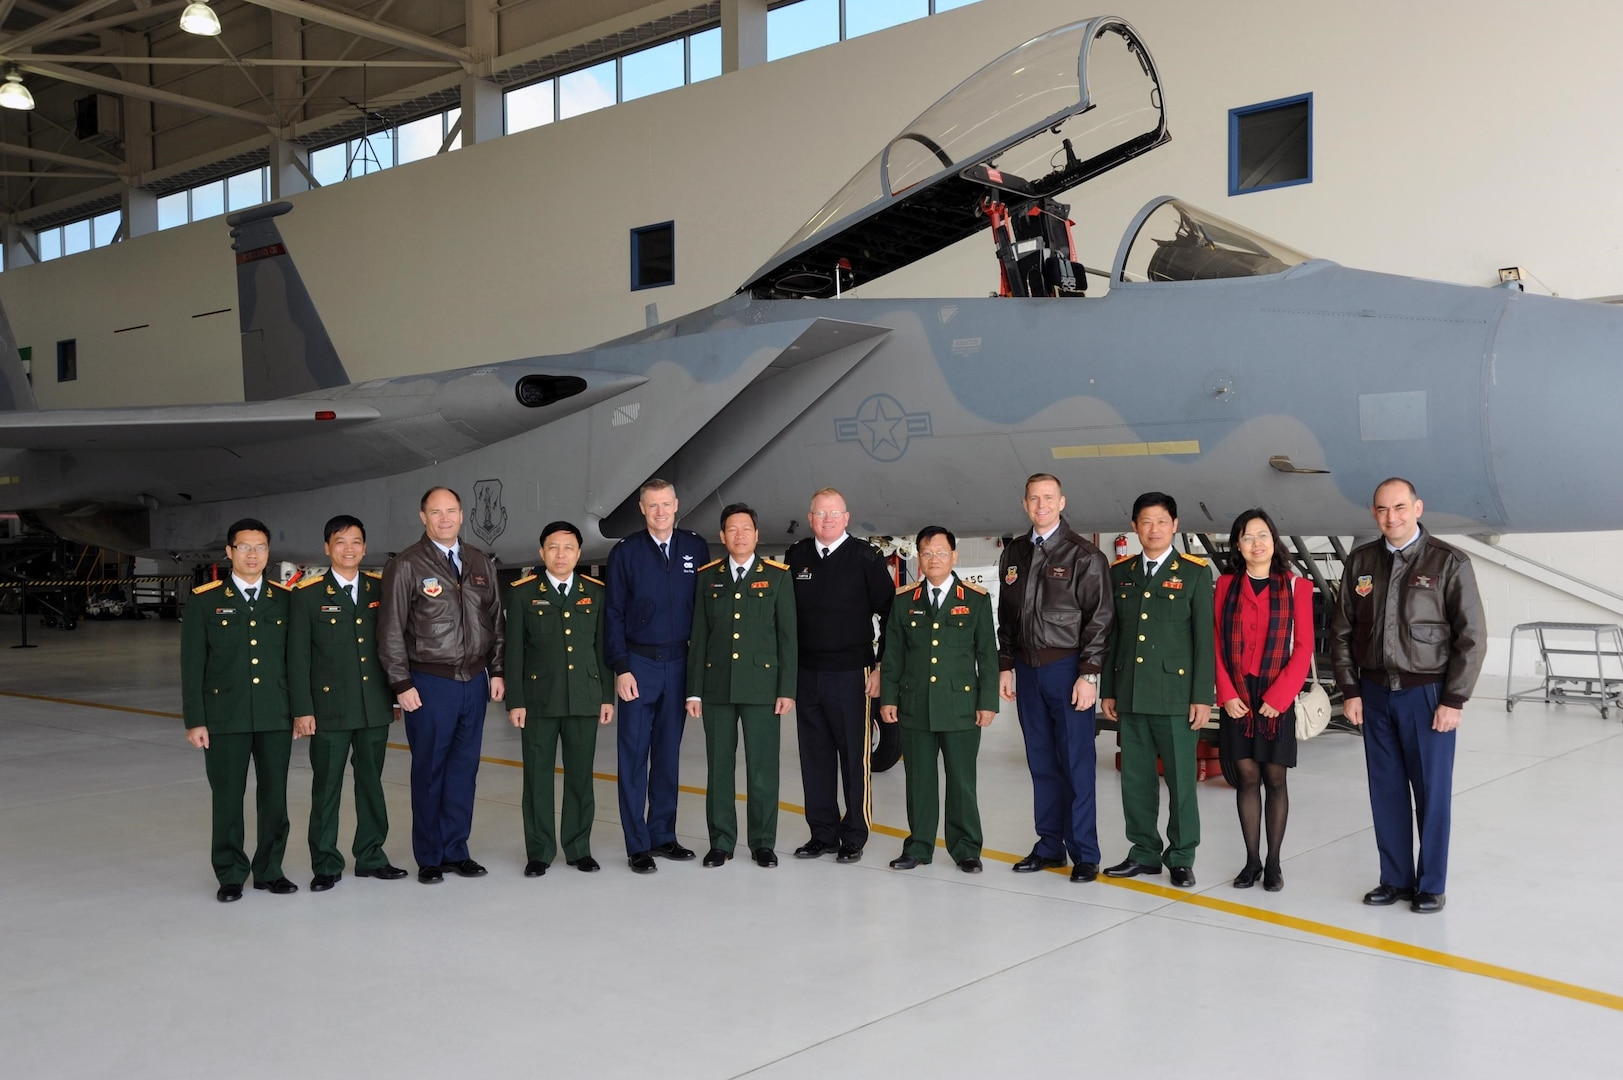 A delegation from Vietnam joins Oregon National Guard leadership for a photo in front of an F-15 Eagle during a visit to the Oregon Air National Guard's 142nd Fighter Wing at the Portland Air National Guard Base, April 15, 2013.